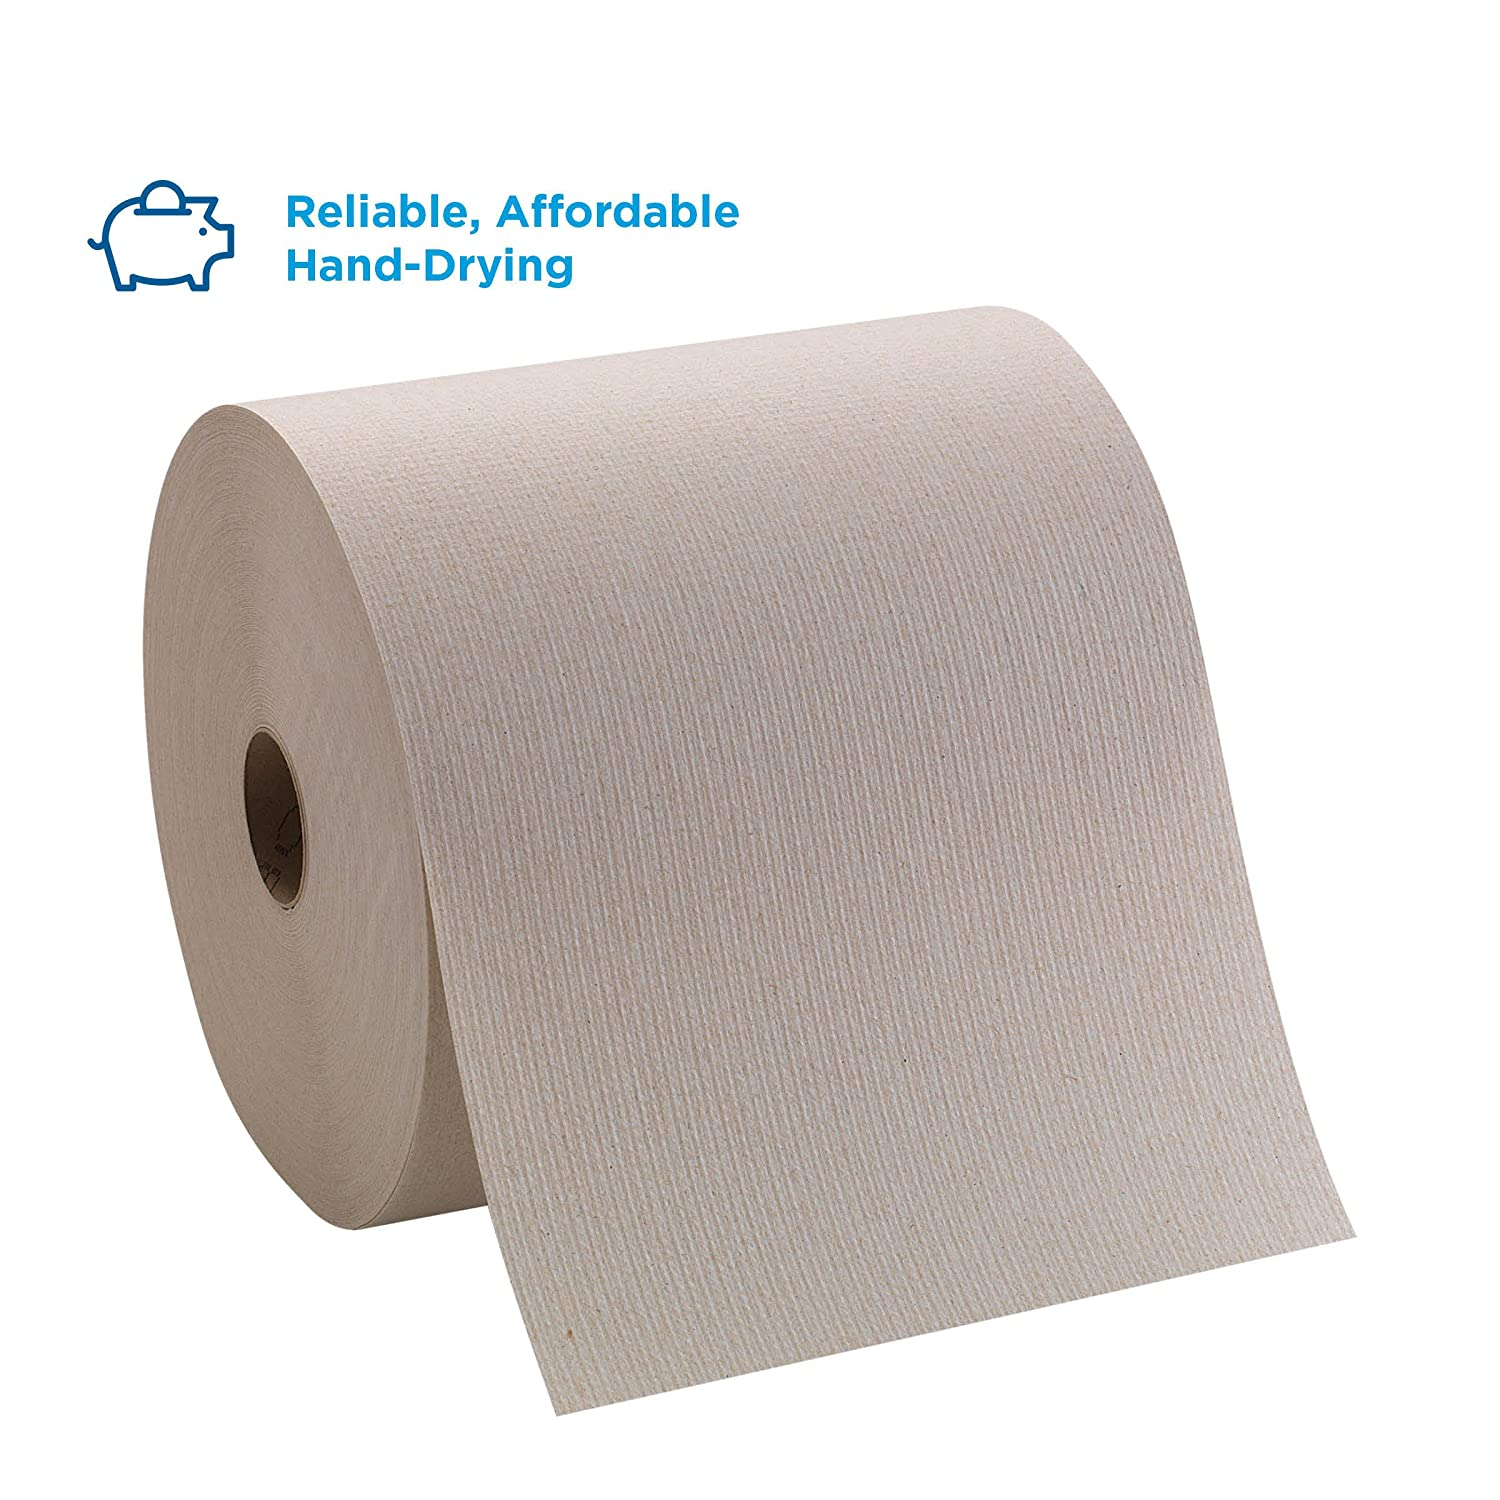 Pacific Blue Basic Recycled Hardwound Paper Towel Rolls by GP PRO (Georgia-Pacific), Brown, 26301, 800 Feet Per Roll, 6 Rolls Per Case: Hand Towel Dispenser: Industrial & Scientific